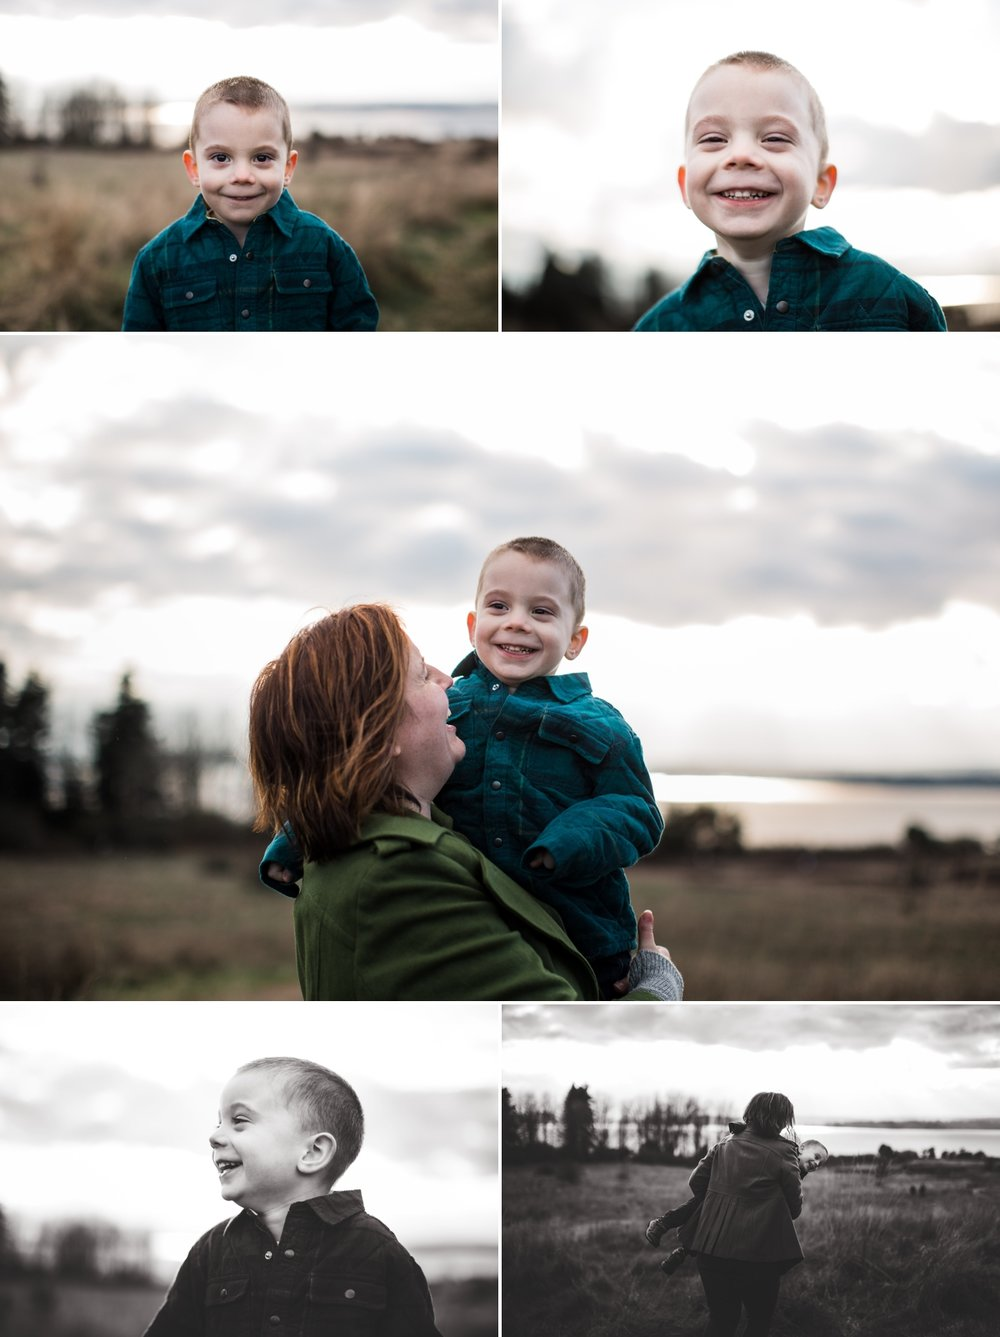 elena s blair photography | seattle family lifestyle photographer | loving family outdoors on location with son